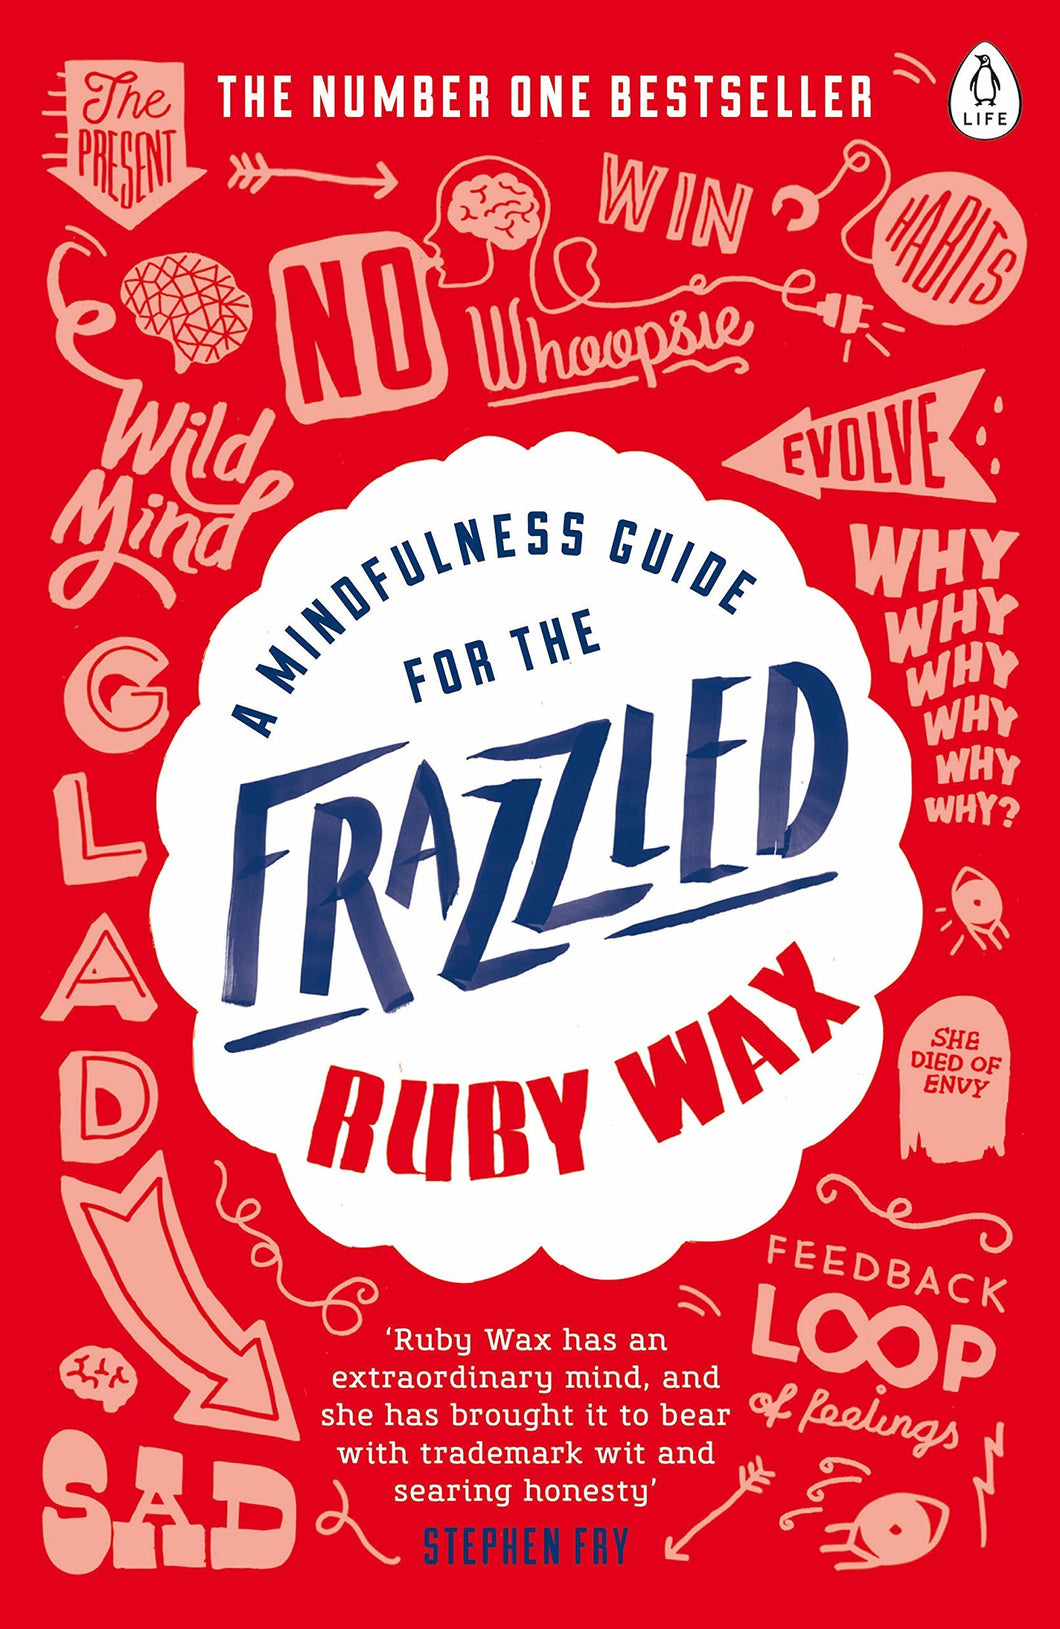 A Mindfulness Guide for the Frazzled by Ruby Wax - Paperback